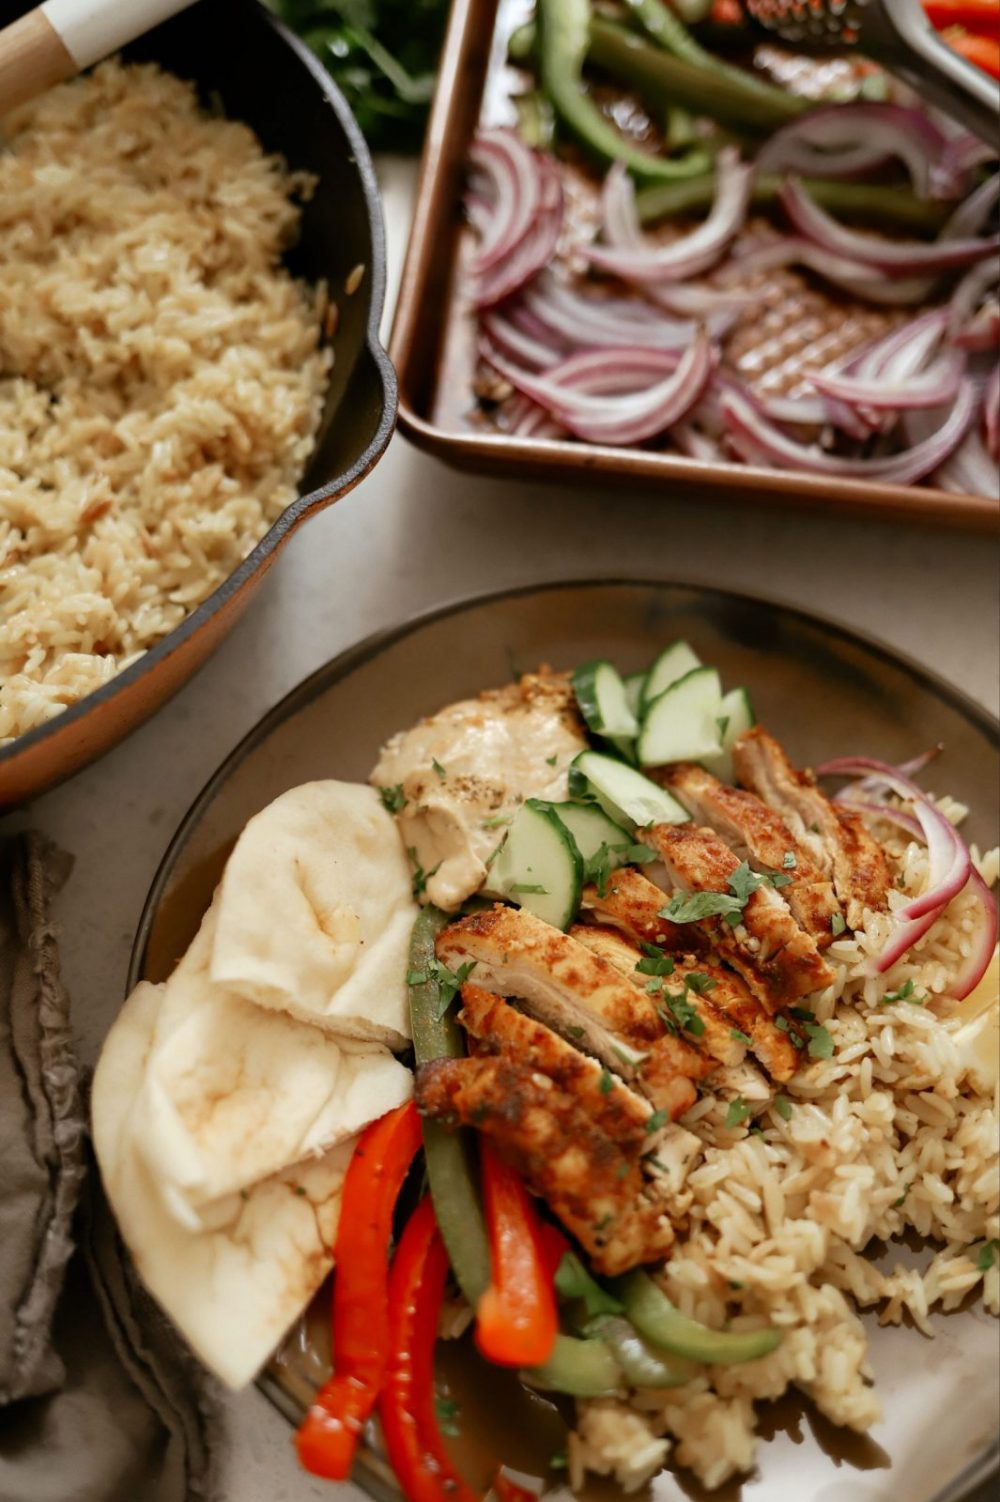 Sheet Pan Chicken Shawarma with Rice Recipe featured by top FL lifestyle blogger, Tabitha Blue of Fresh Mommy Blog   Sheet Pan Chicken Shawarma by popular Florida lifestyle blog, Fresh Mommy Blog: image of sheet pan chicken shawarma on a plate with rice, cucumbers, and pita bread